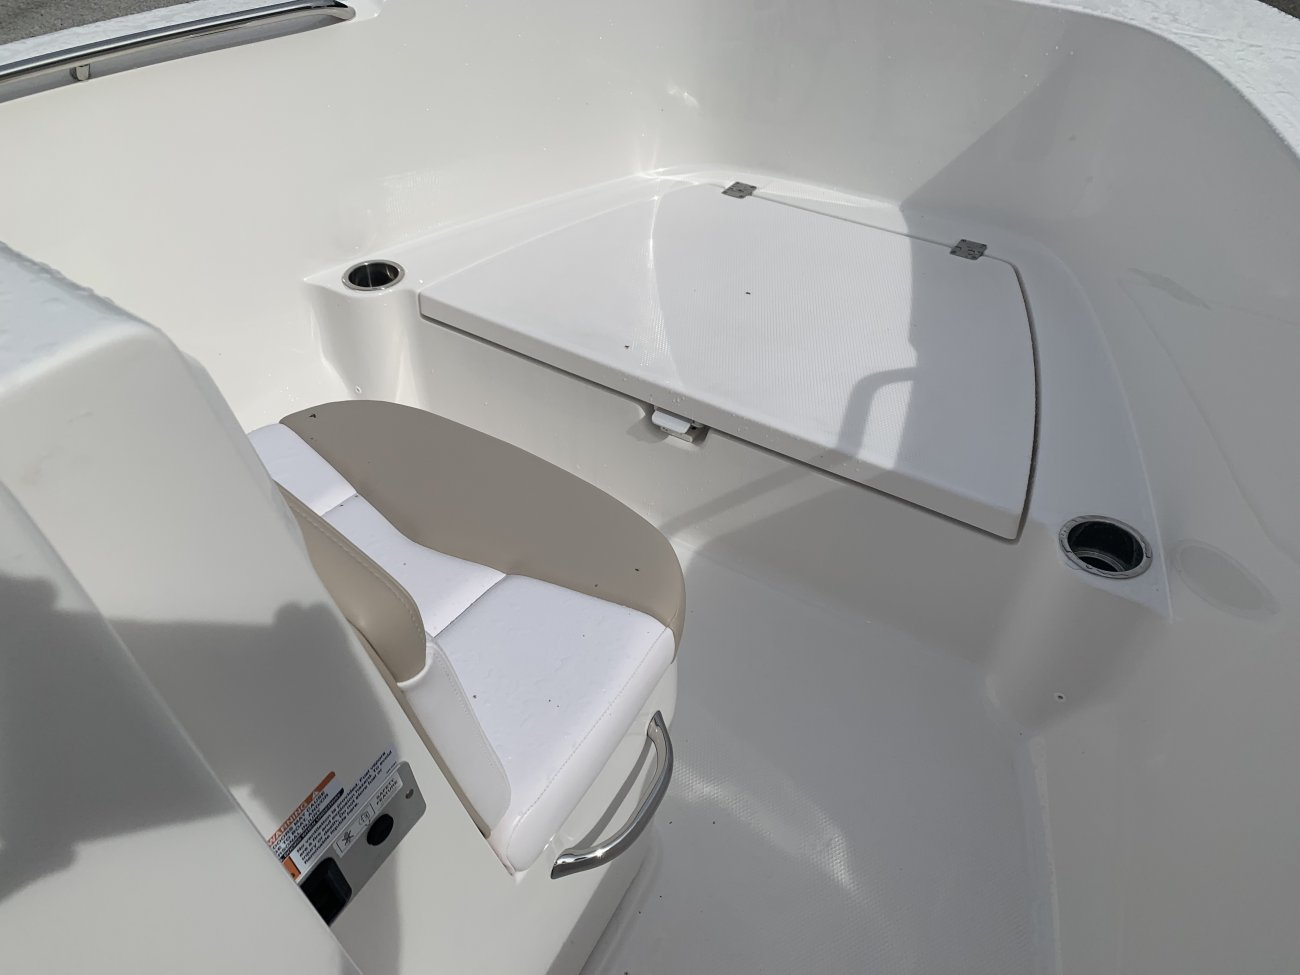 A R180 Center Console is a Power and could be classed as a Center Console, Freshwater Fishing, High Performance, Saltwater Fishing, Runabout,  or, just an overall Great Boat!